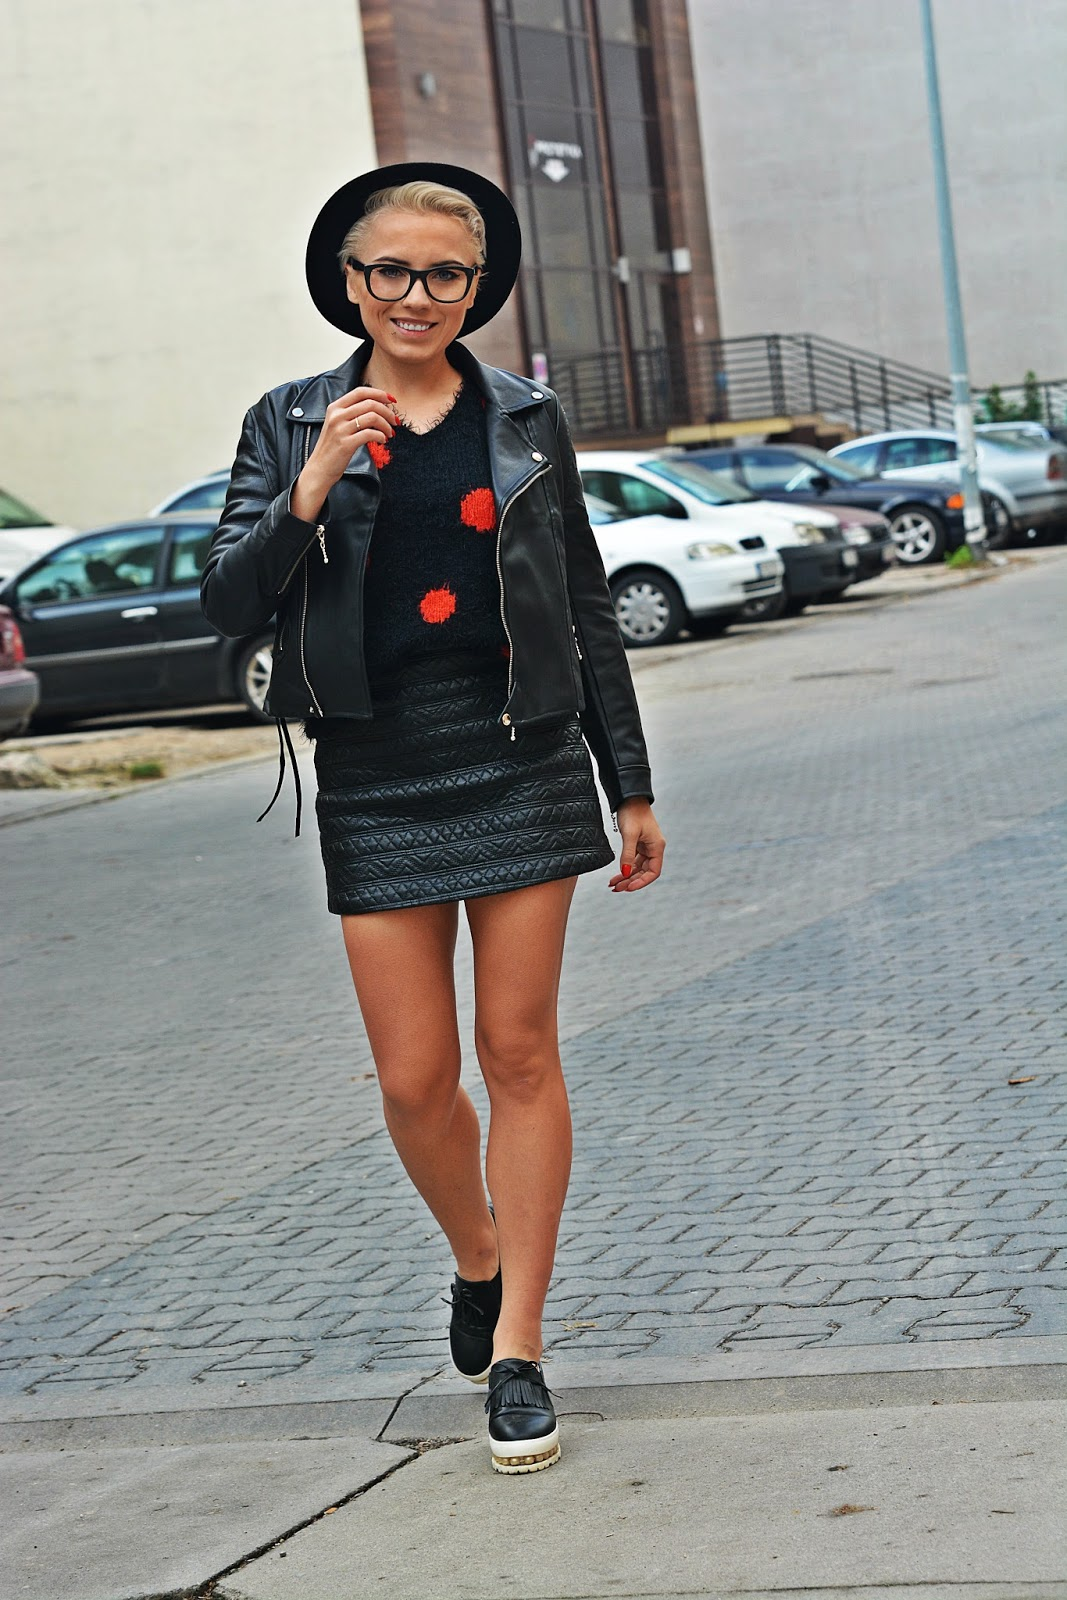 black_leather_skirt_biker_jacket_karyn3